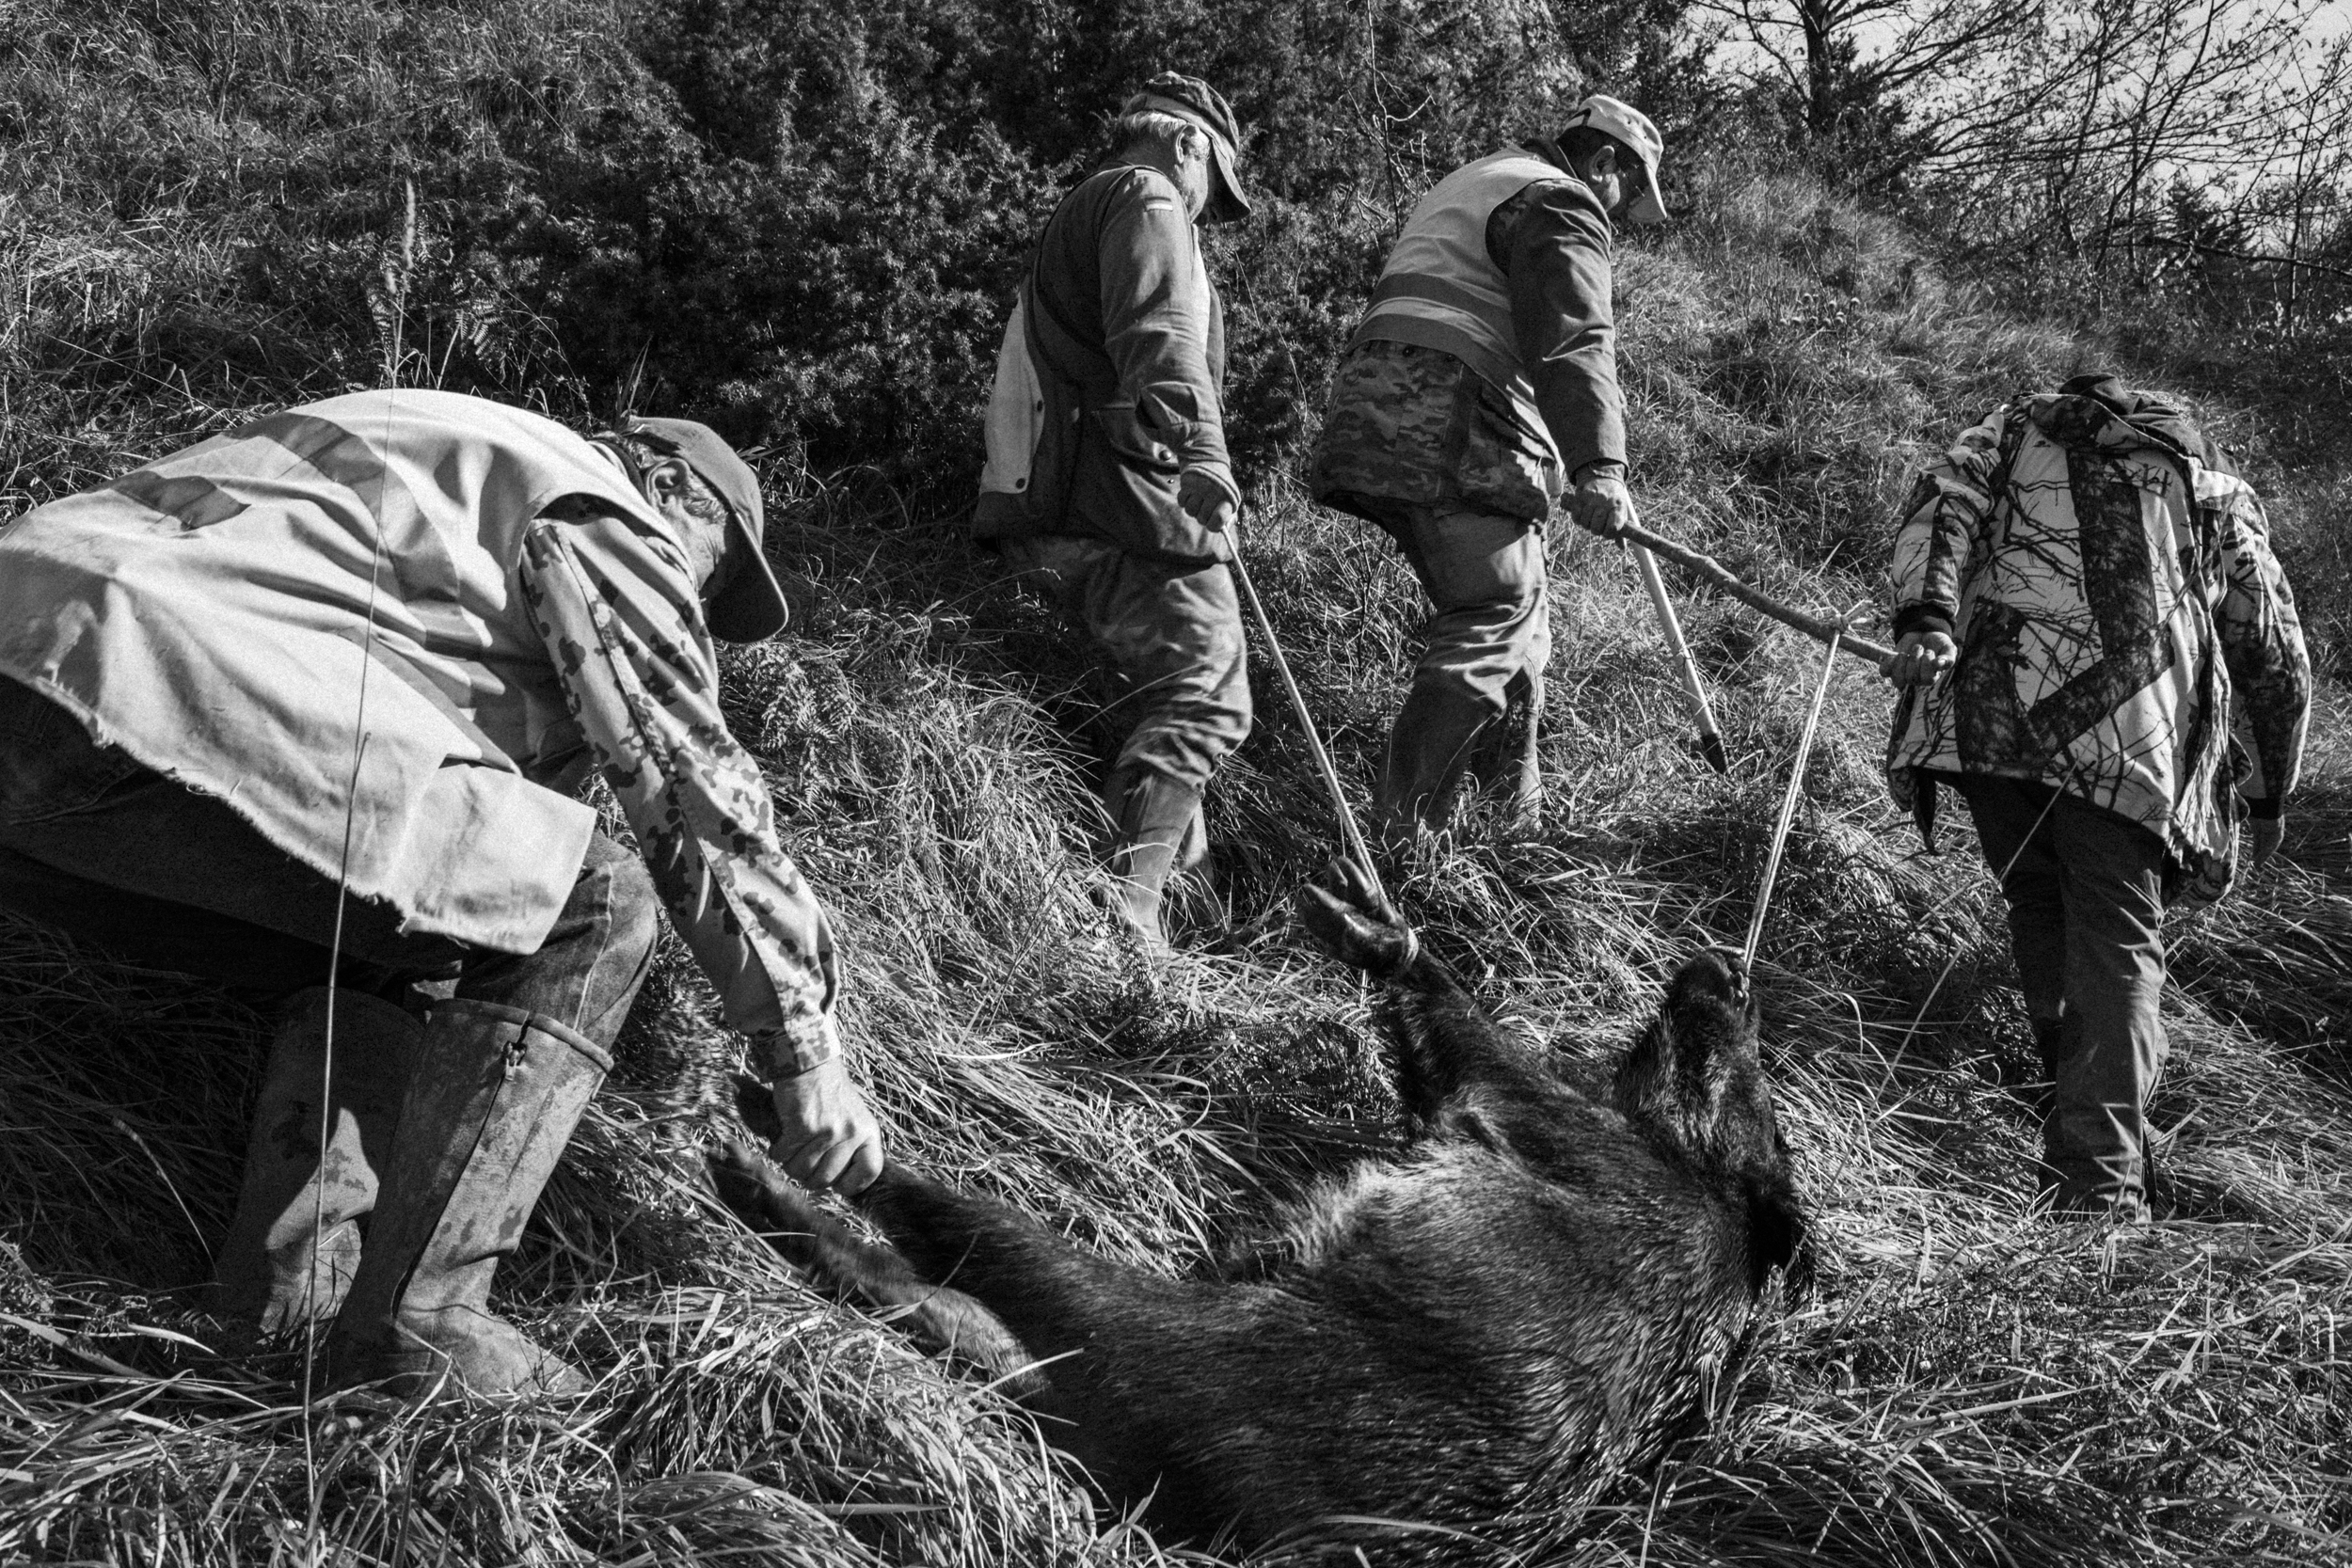 Pescopennataro (IS), Italy - November 2016. A group of local hunters transports a wild boar, just killed. The wild boars in recent years represent a true plague for local farmers. Without due precautions, wild boars systematically destroy seasonal plantations